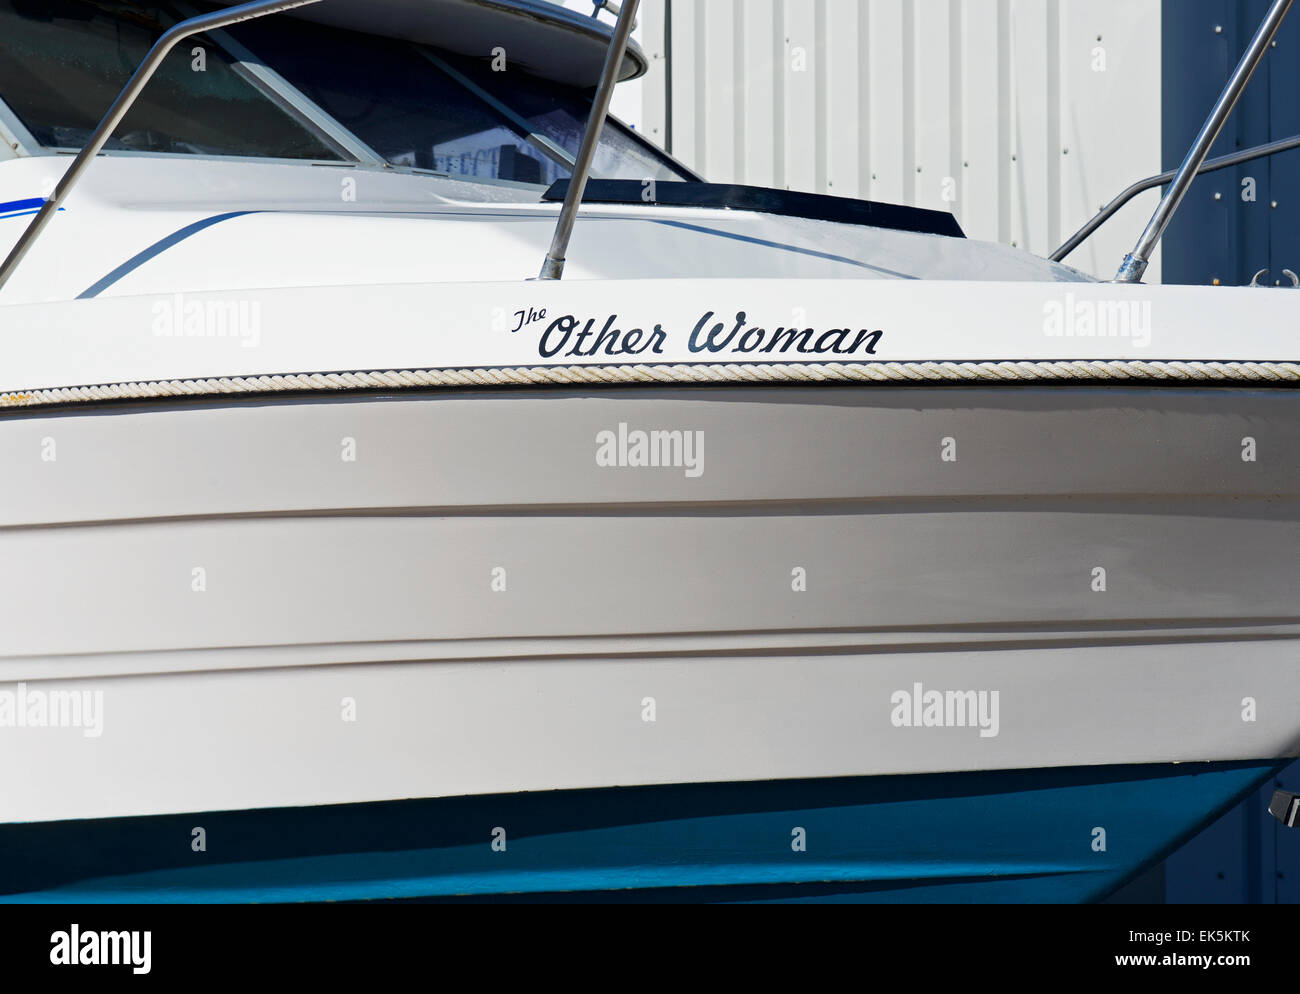 boat named The Other Woman - Stock Image